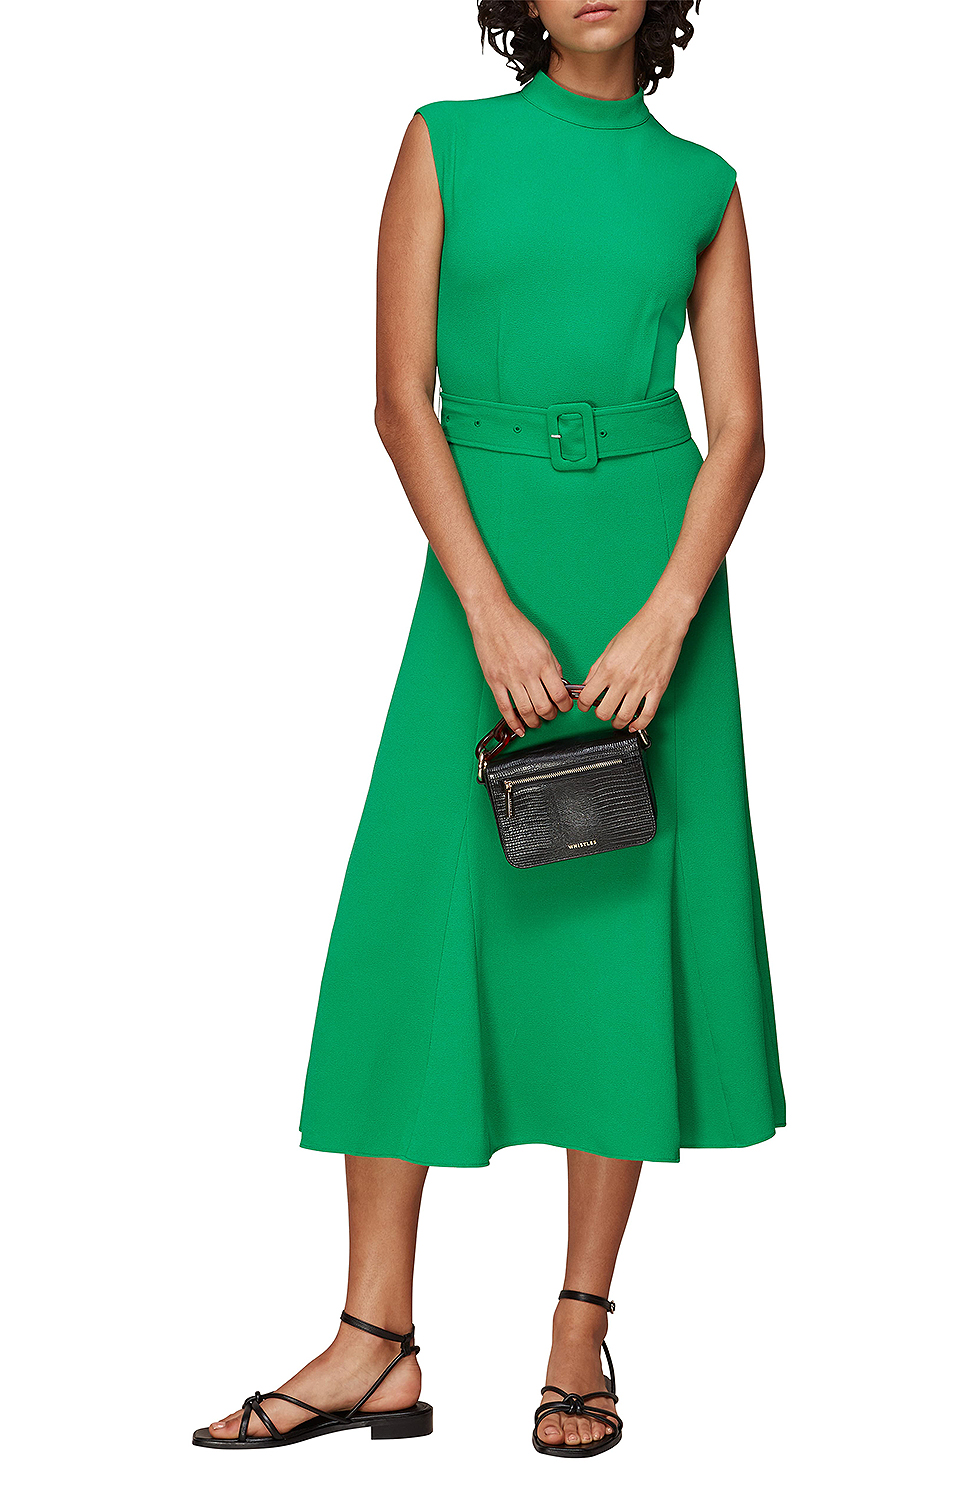 green dress with belt from nordstrom